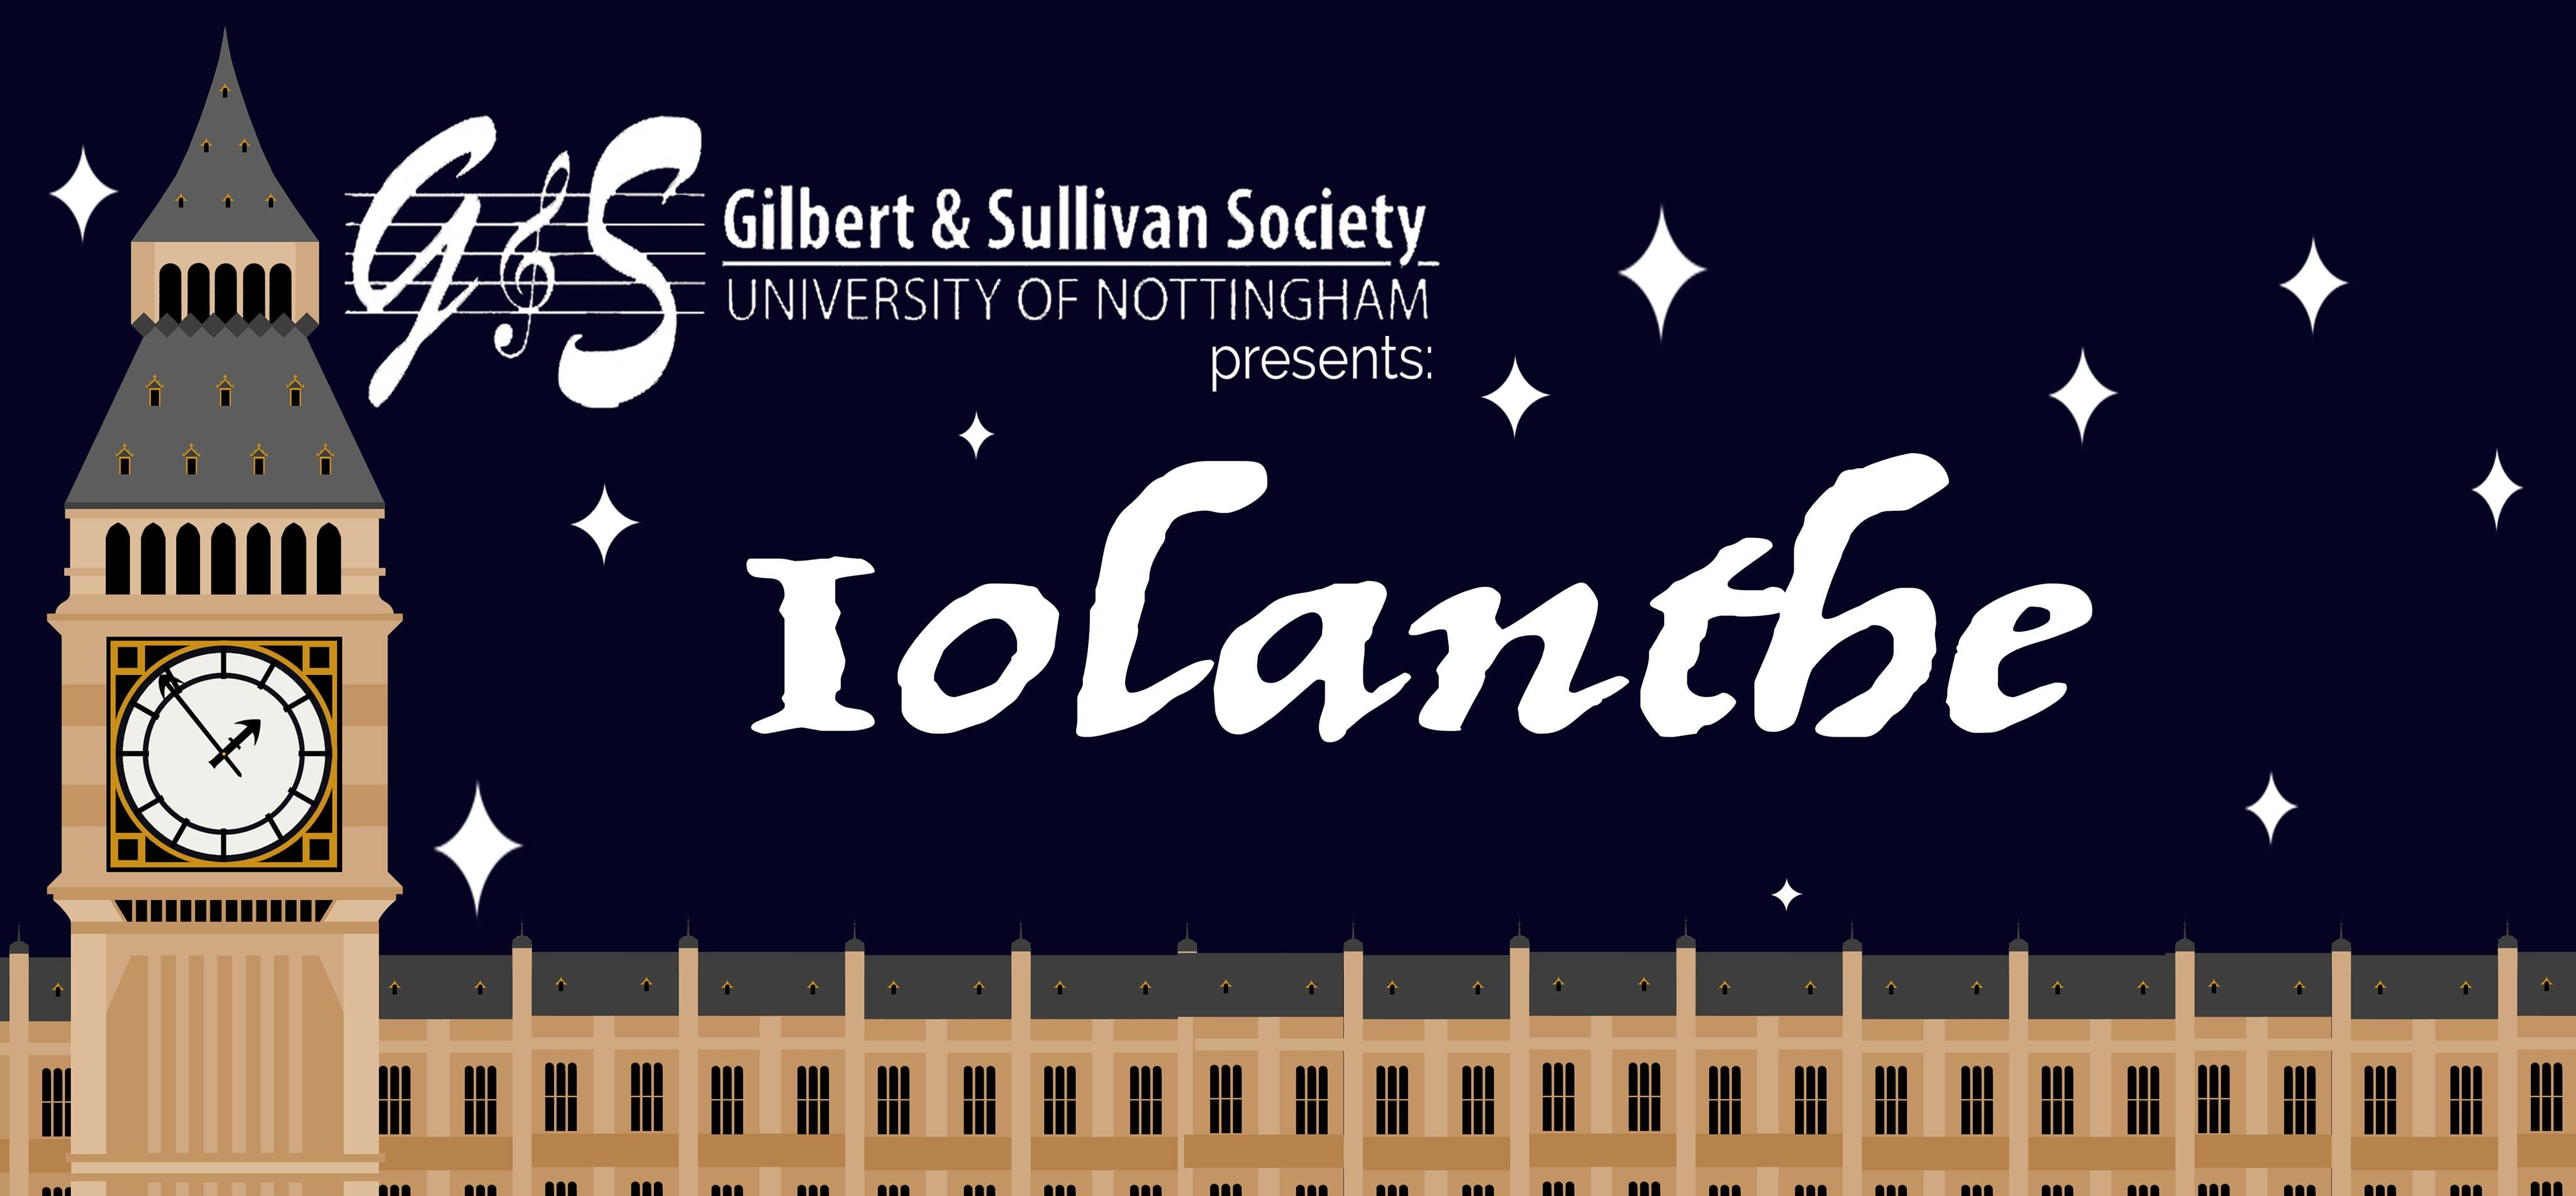 G&S Society Presents: Iolanthe